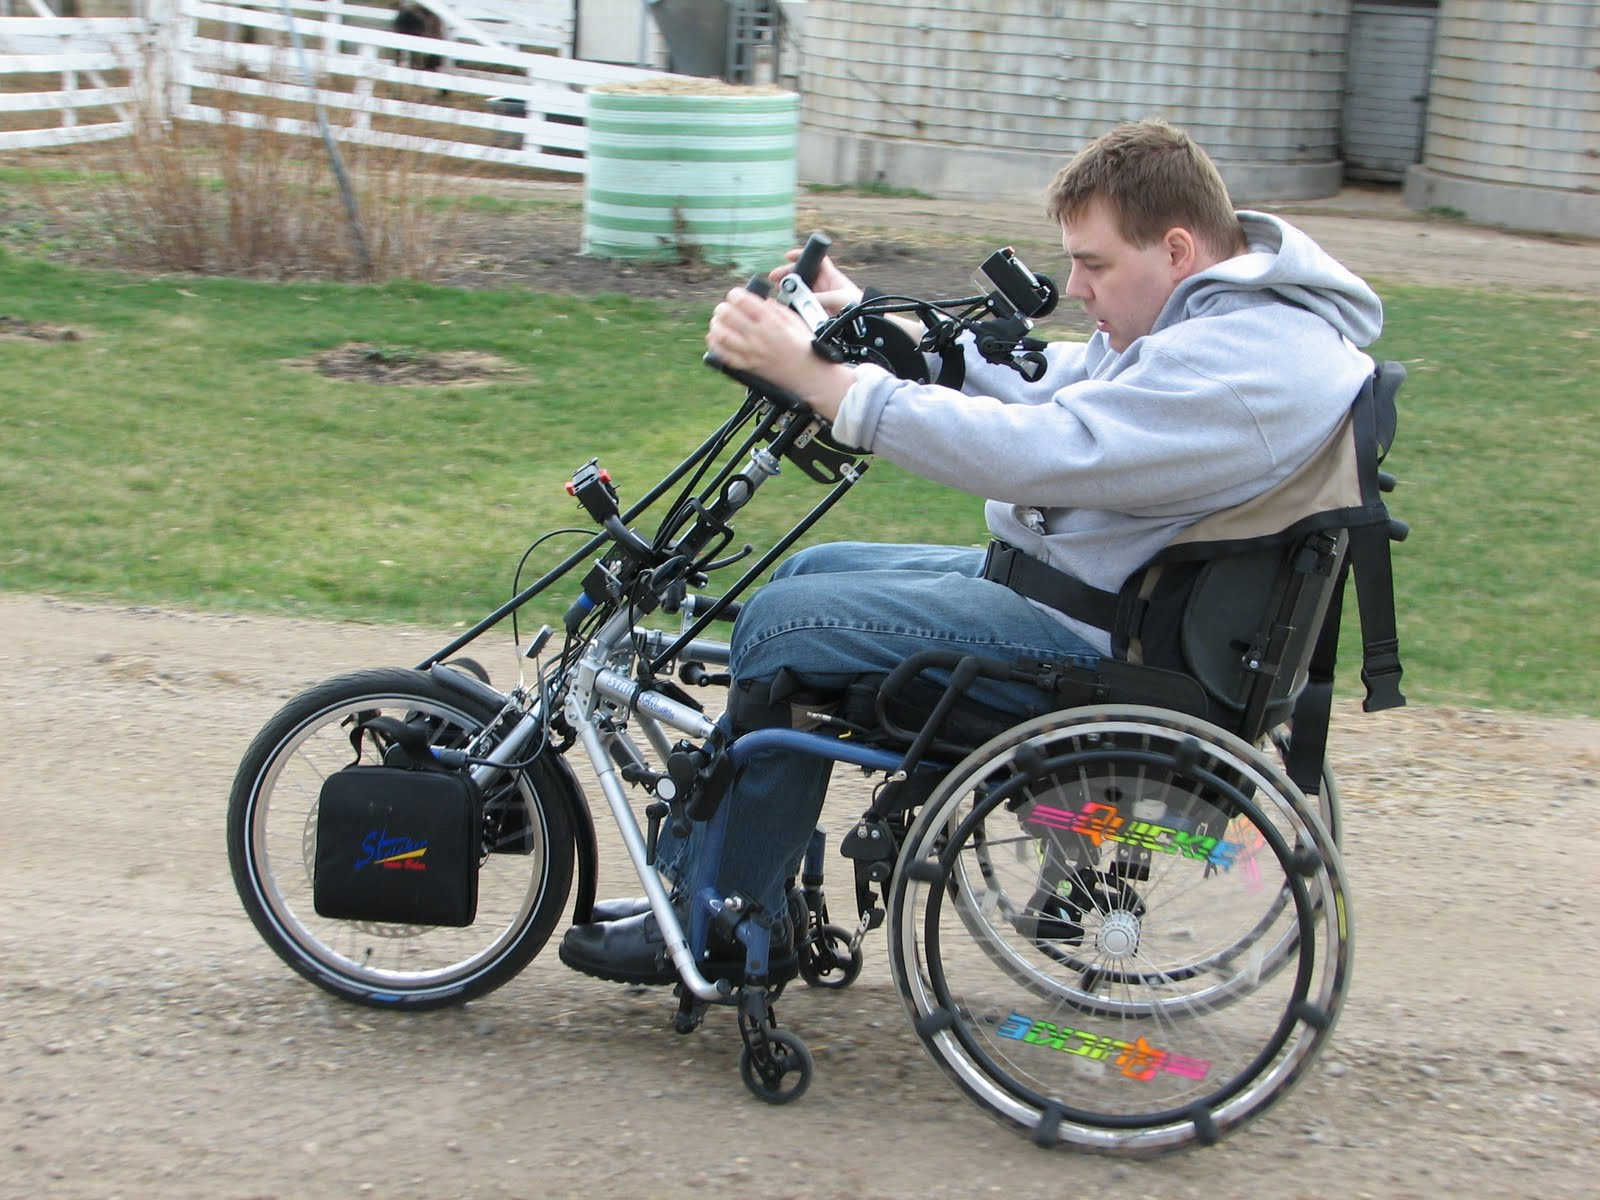 Stricker ElectroBike Quadriplegic Power Assist Handcycle conquerors gravel